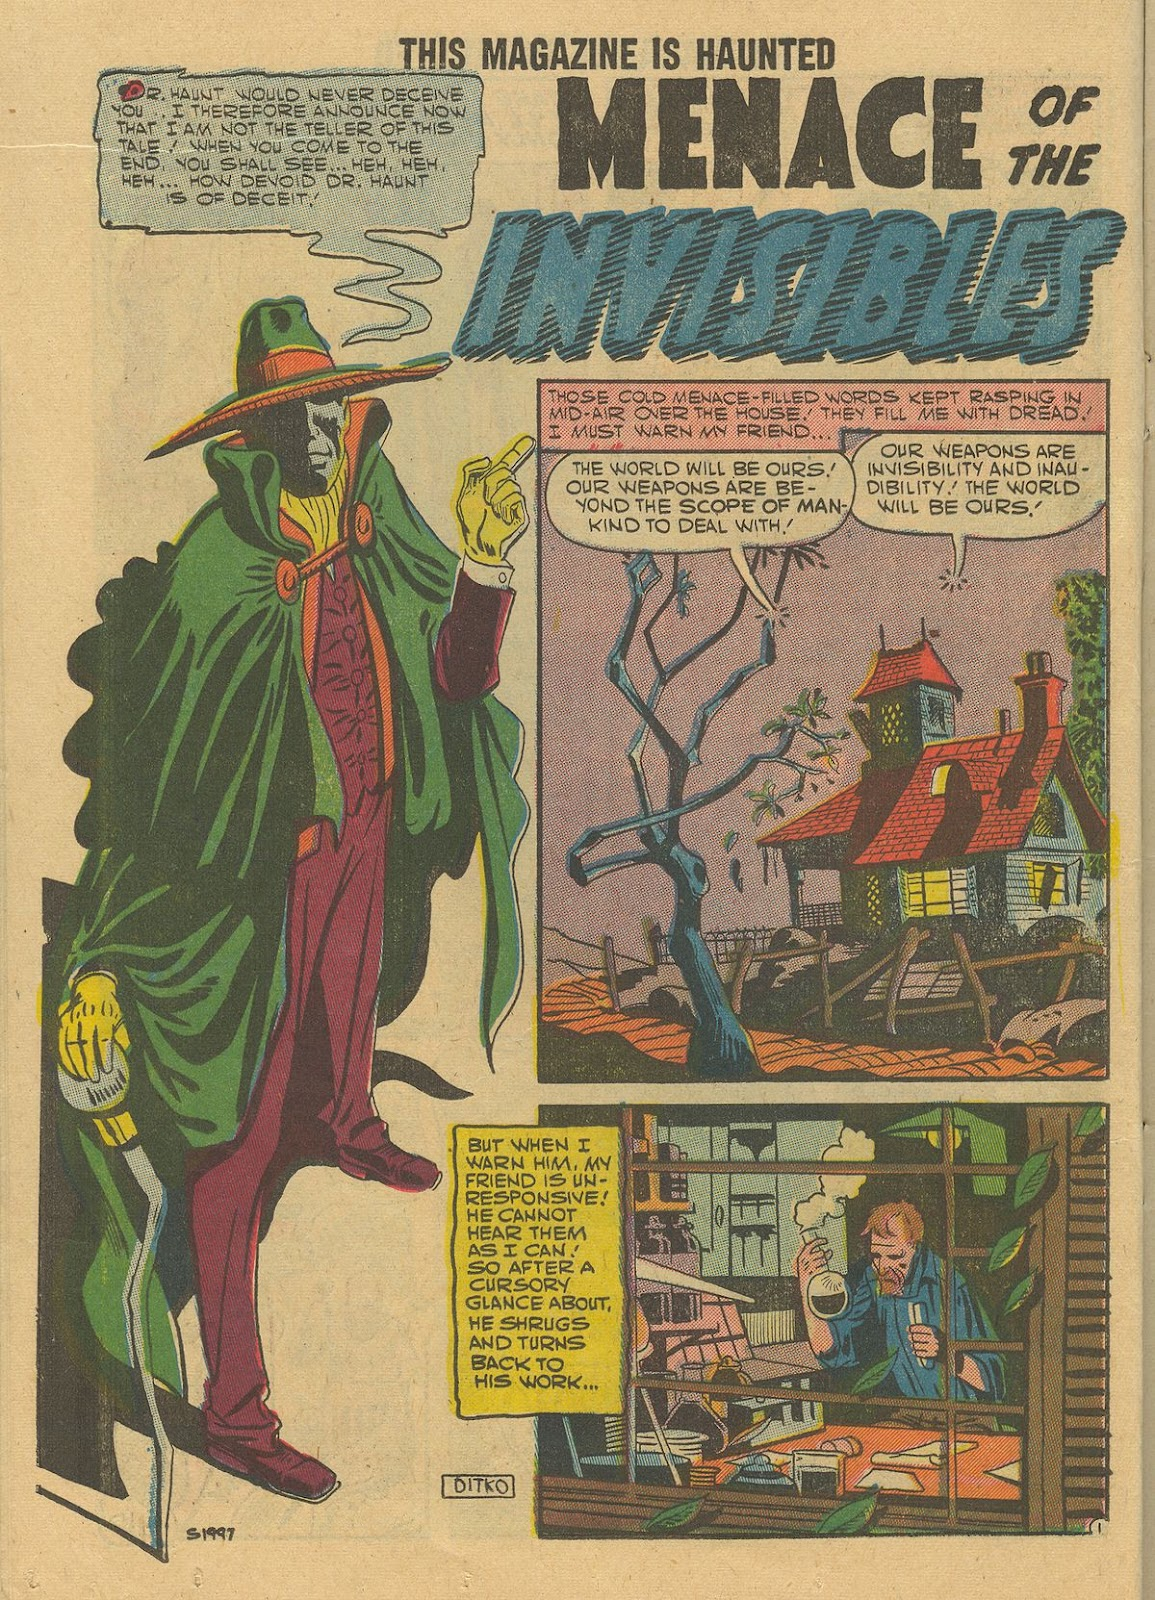 Read online This Magazine Is Haunted comic -  Issue #13 - 14